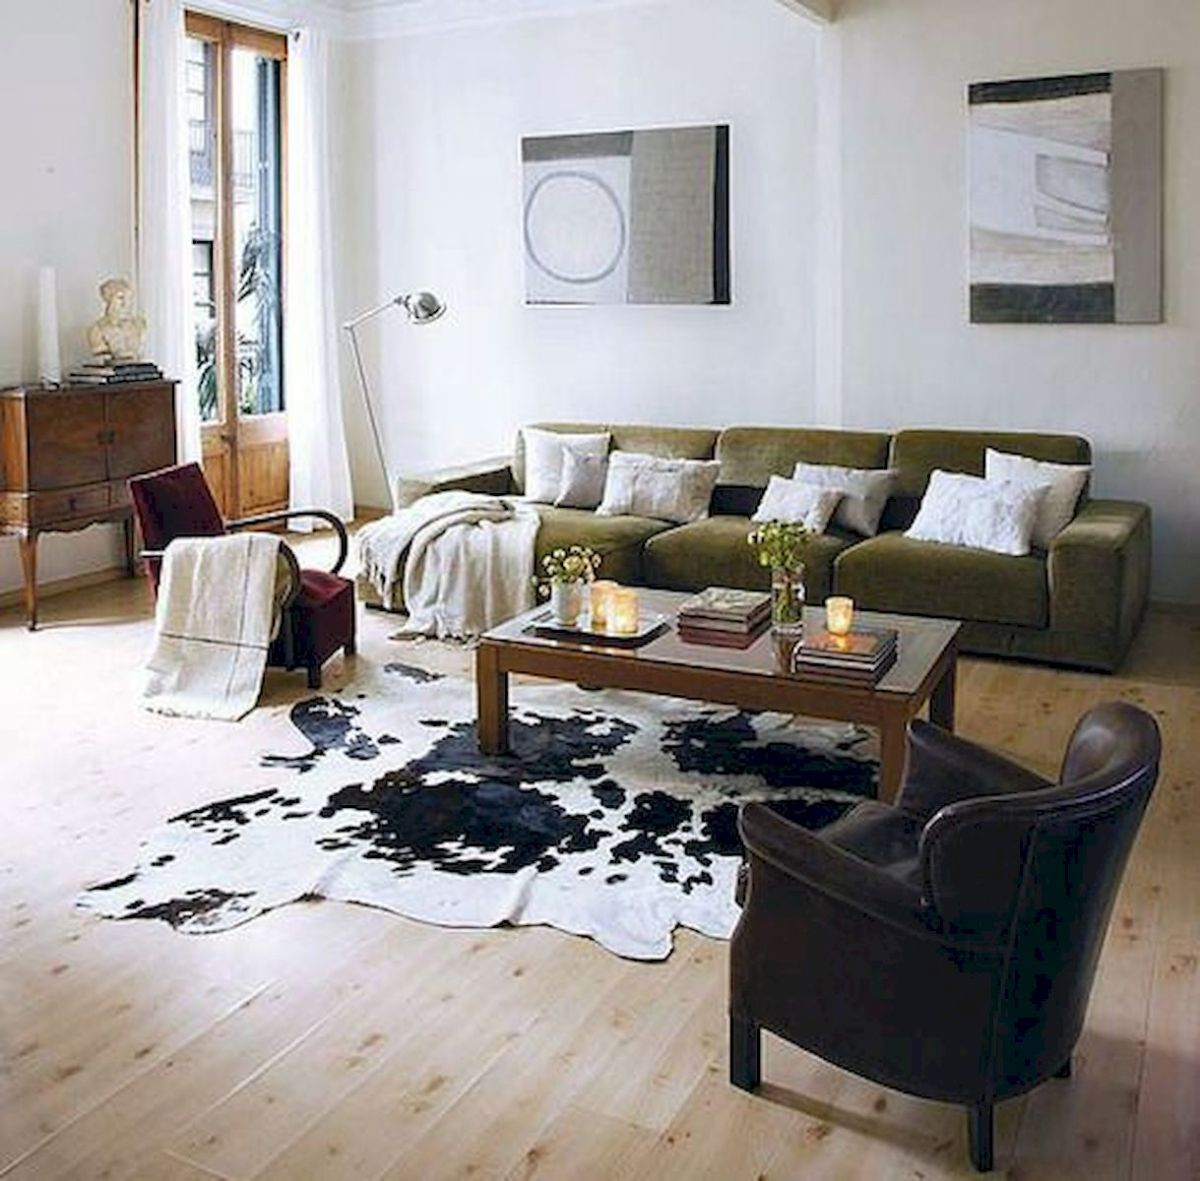 50 Best Living Room Decor Ideas With Artwork Rugs (1)